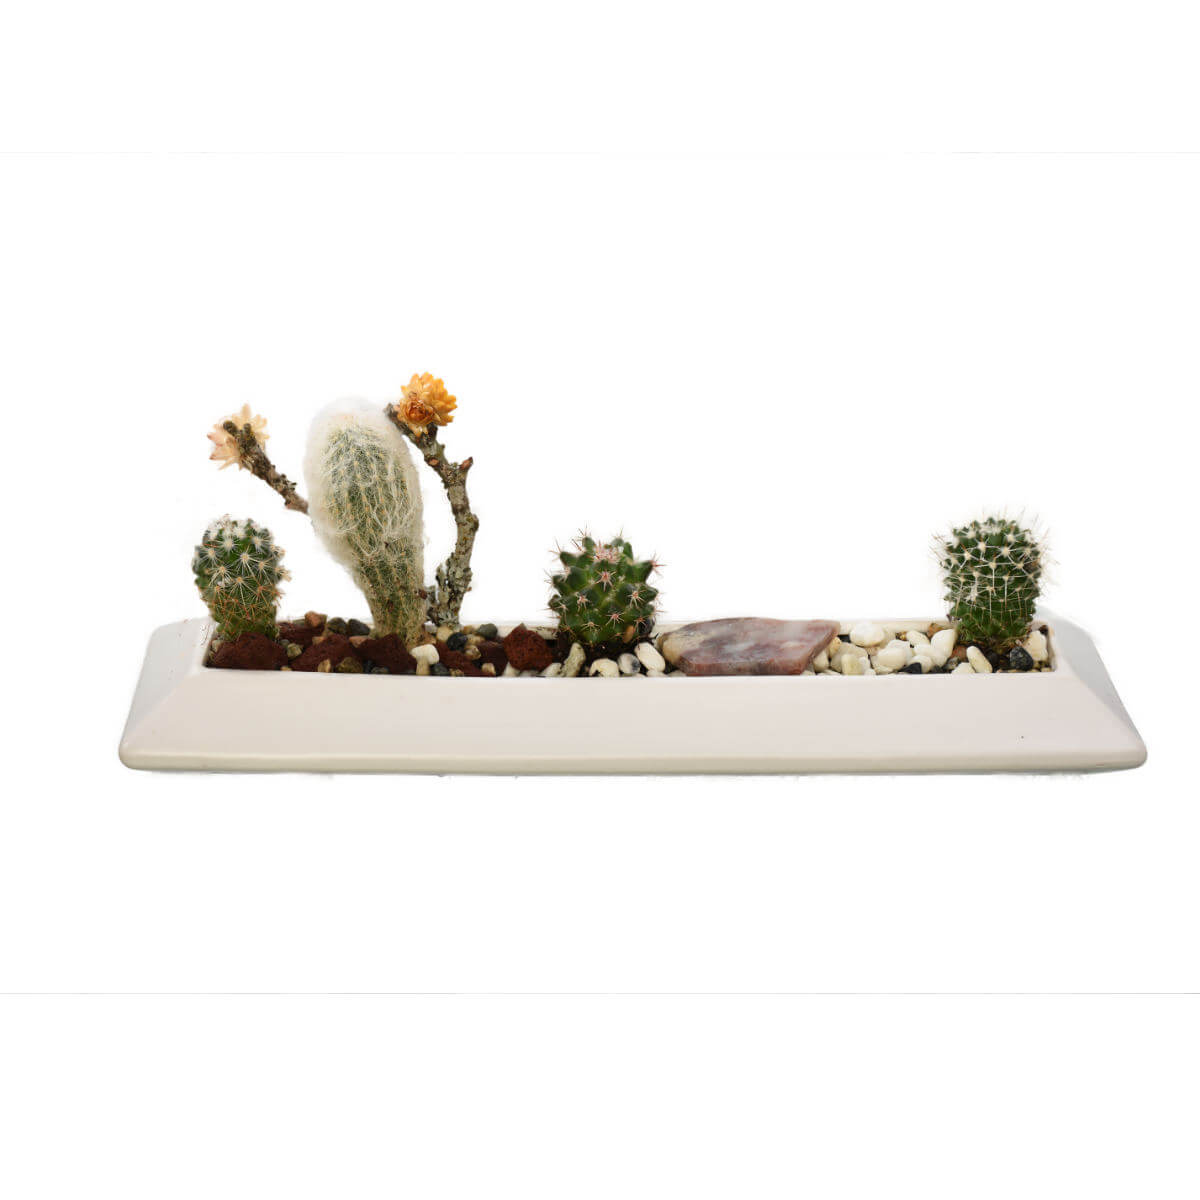 Vancouver Indoor Tropical and Cacti Garden for your desk |  Adele Rae Plant Store